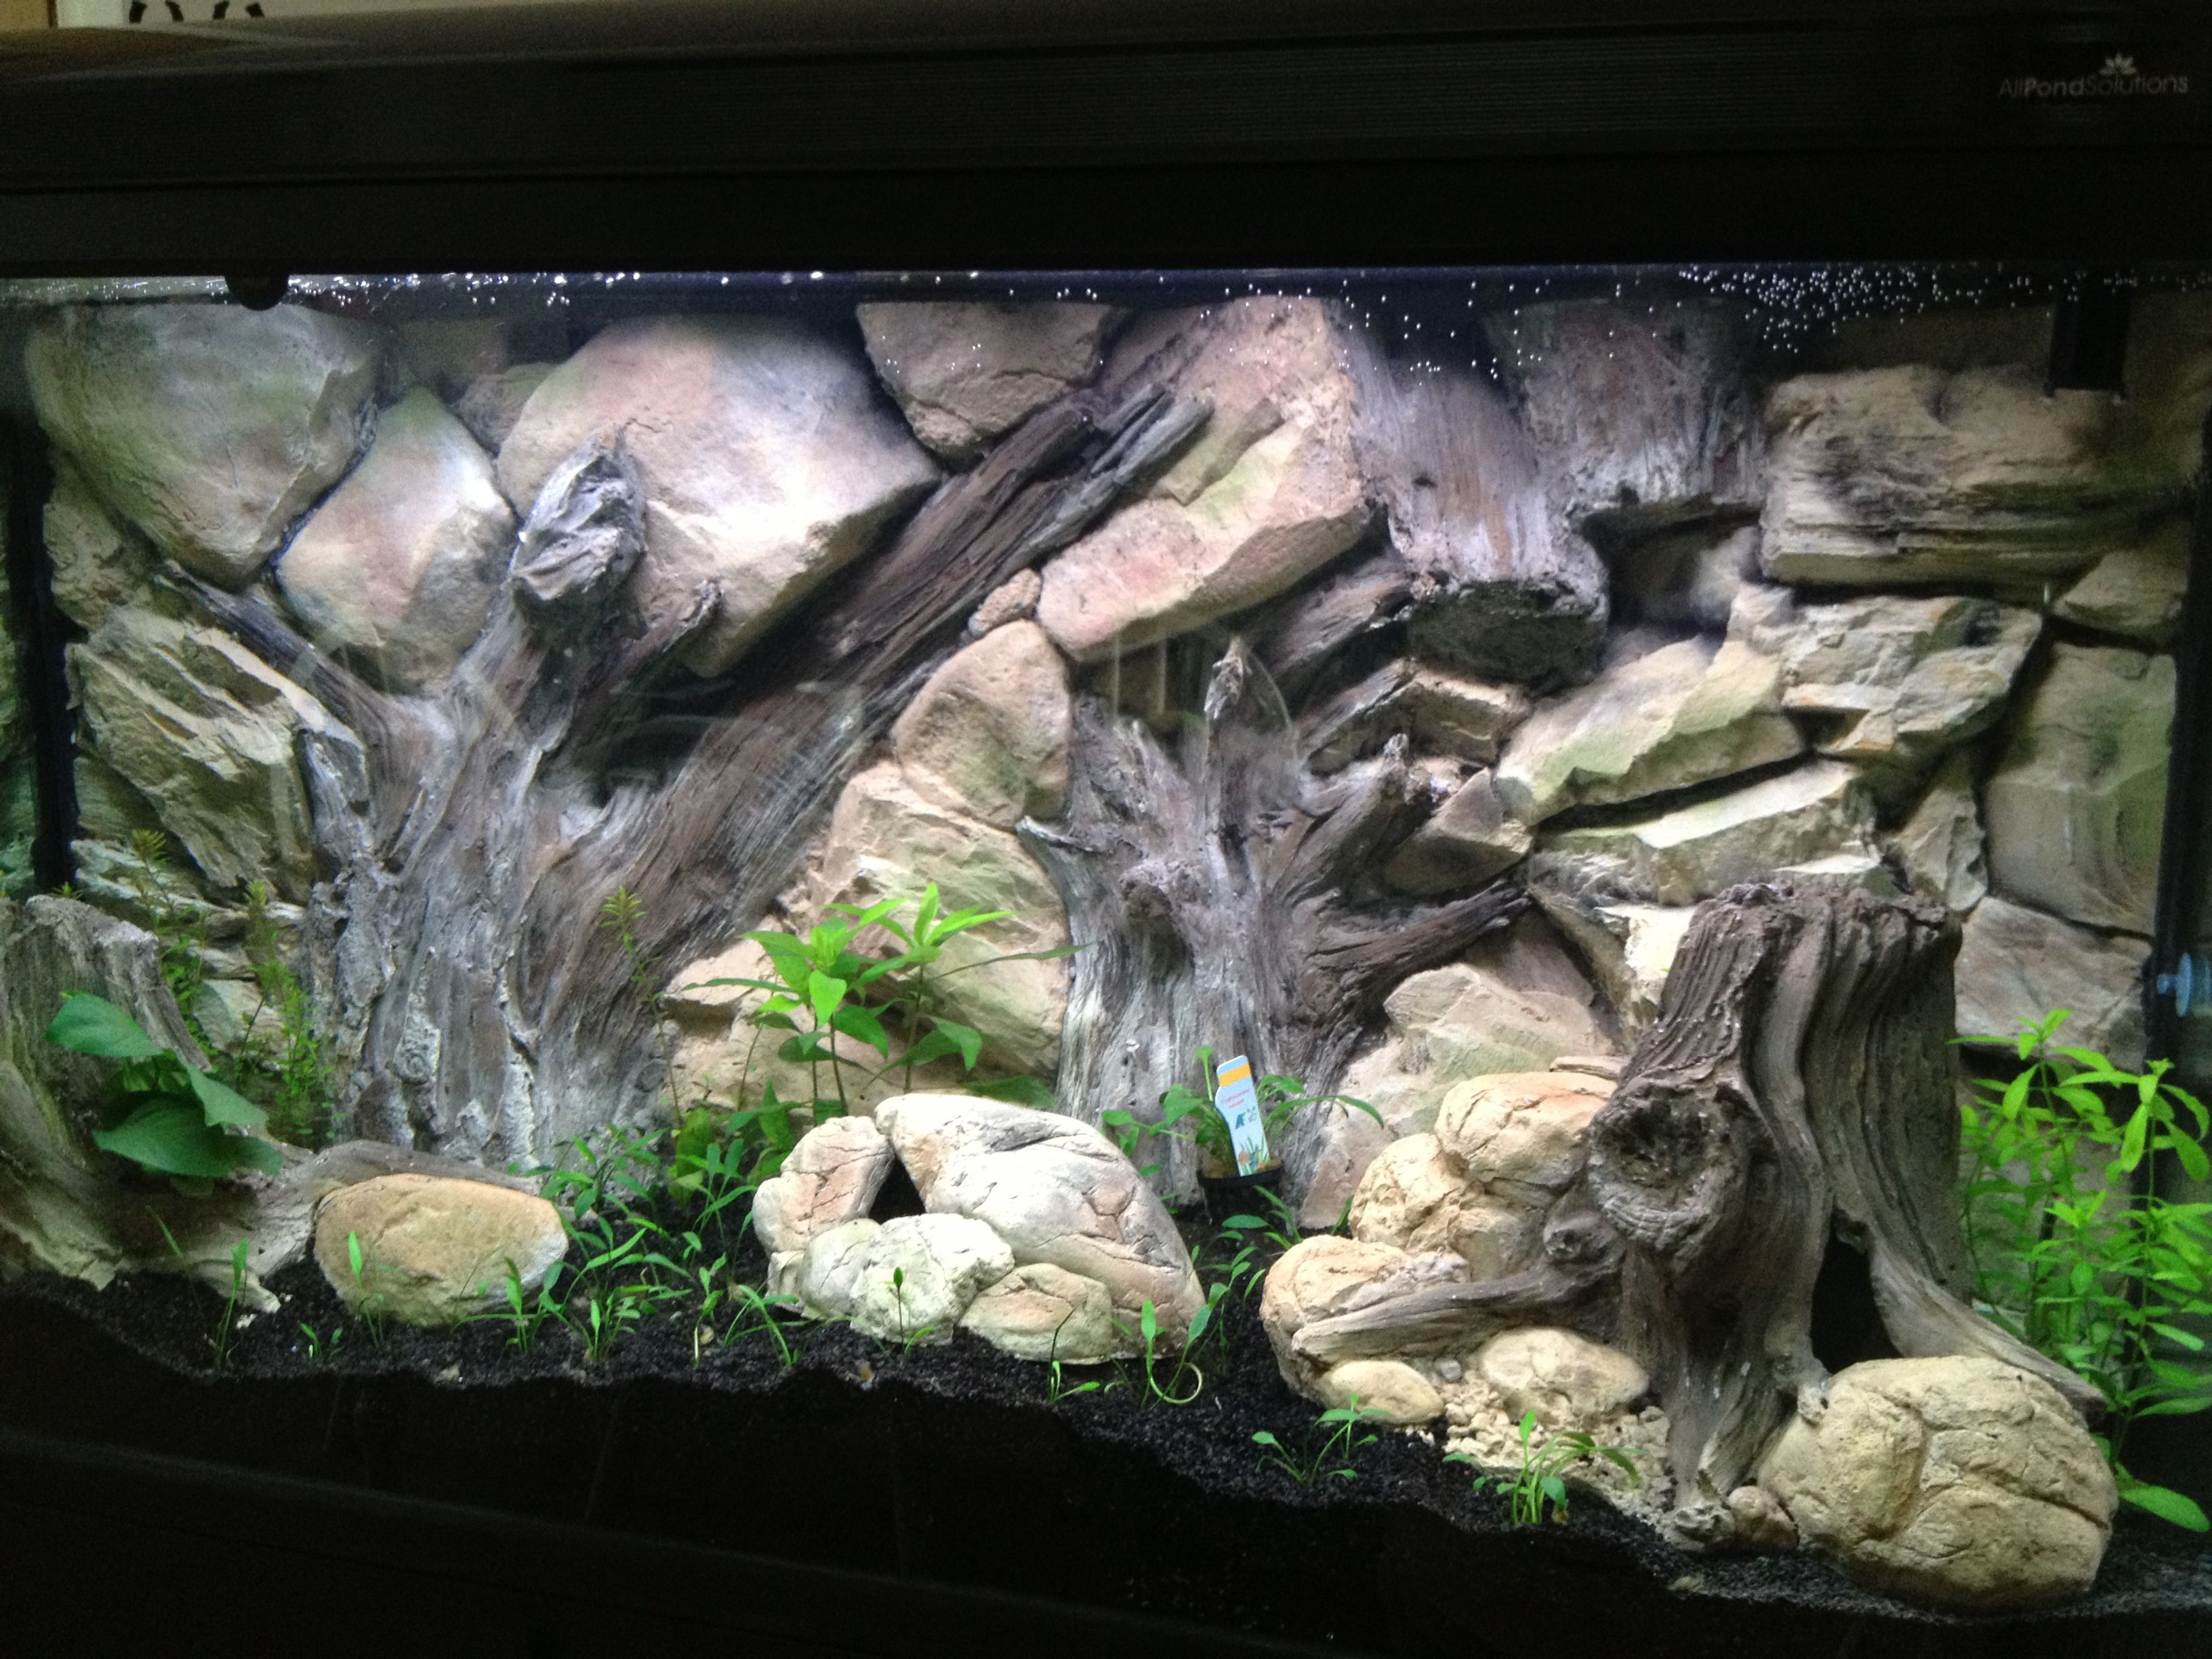 Cool aquarium ornaments - Cool Example Of Aquarium Decoration With Our 3d Root Background And Tree Trunks The Background